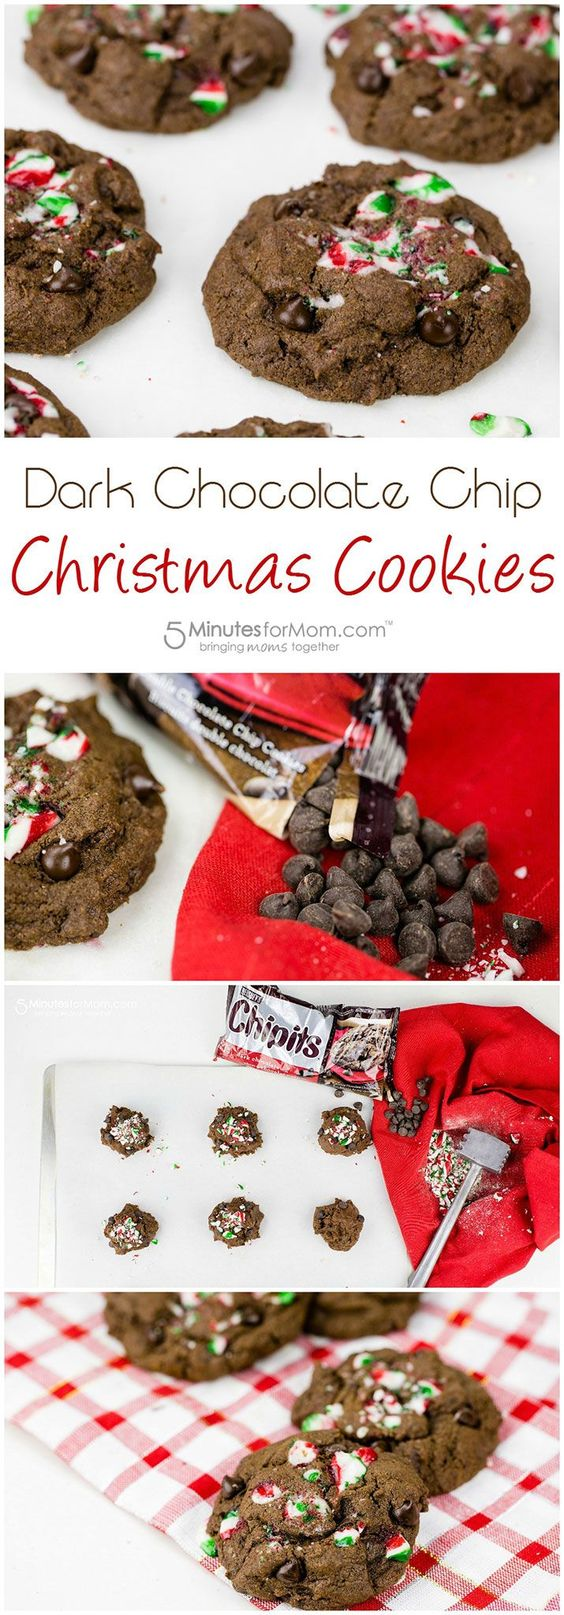 Dark Chocolate Chip Christmas Cookies Recipe #chocolatechipcookies #cookies #cookierecipe #ad